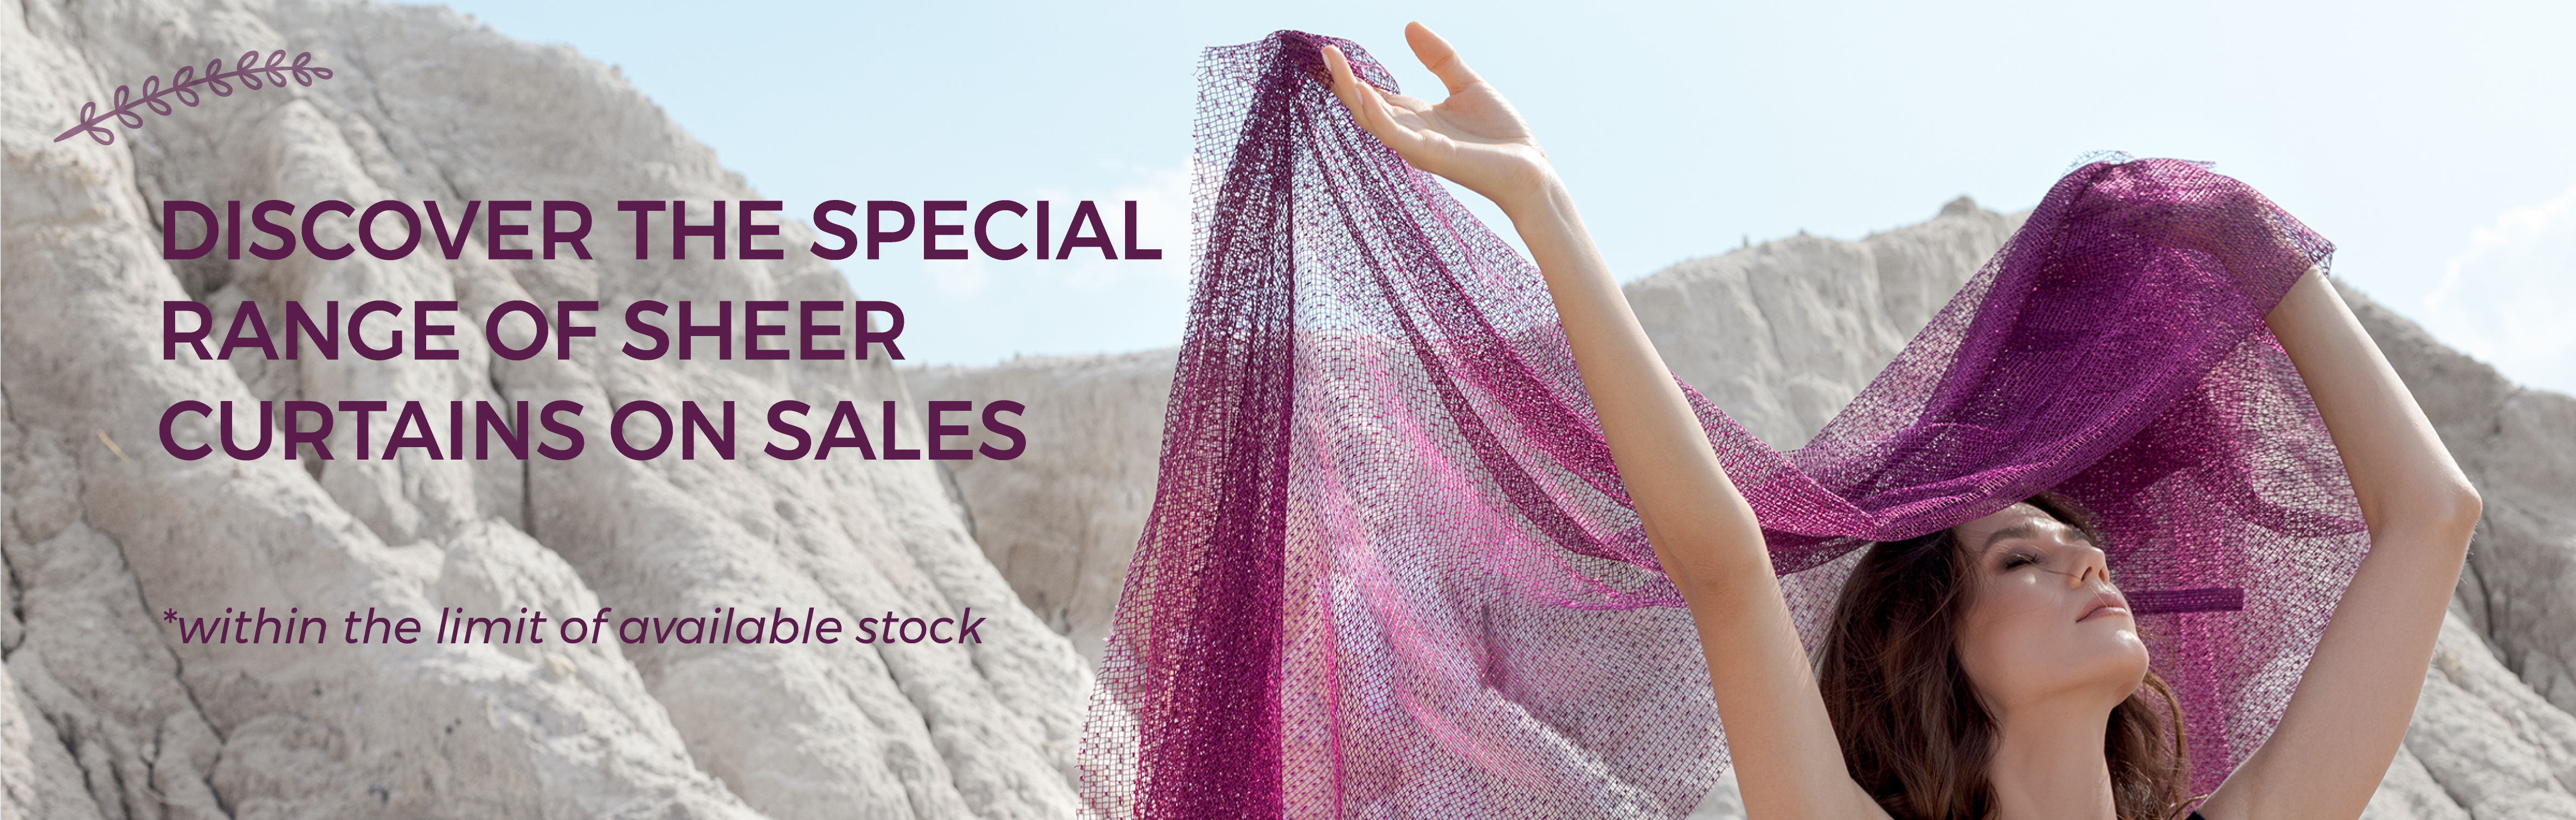 November's Promotion - Sheer Curtains on Sales